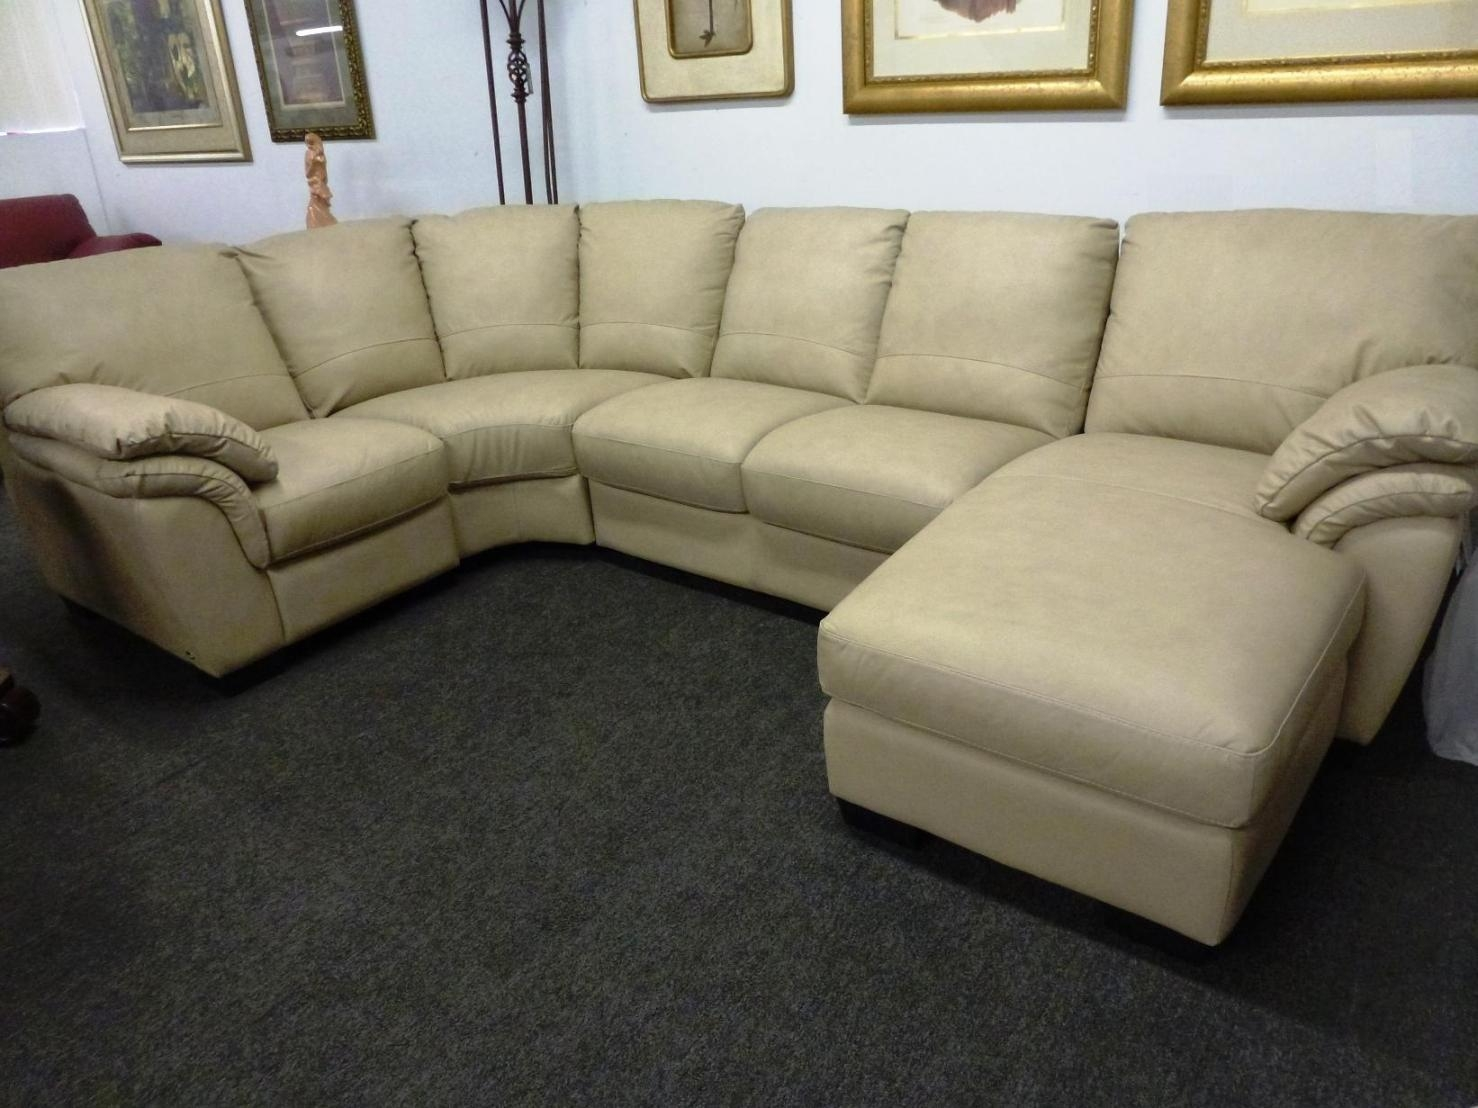 cream full leather chaise sectional sofa best bed mattress replacement 22 inspirations sofas ideas